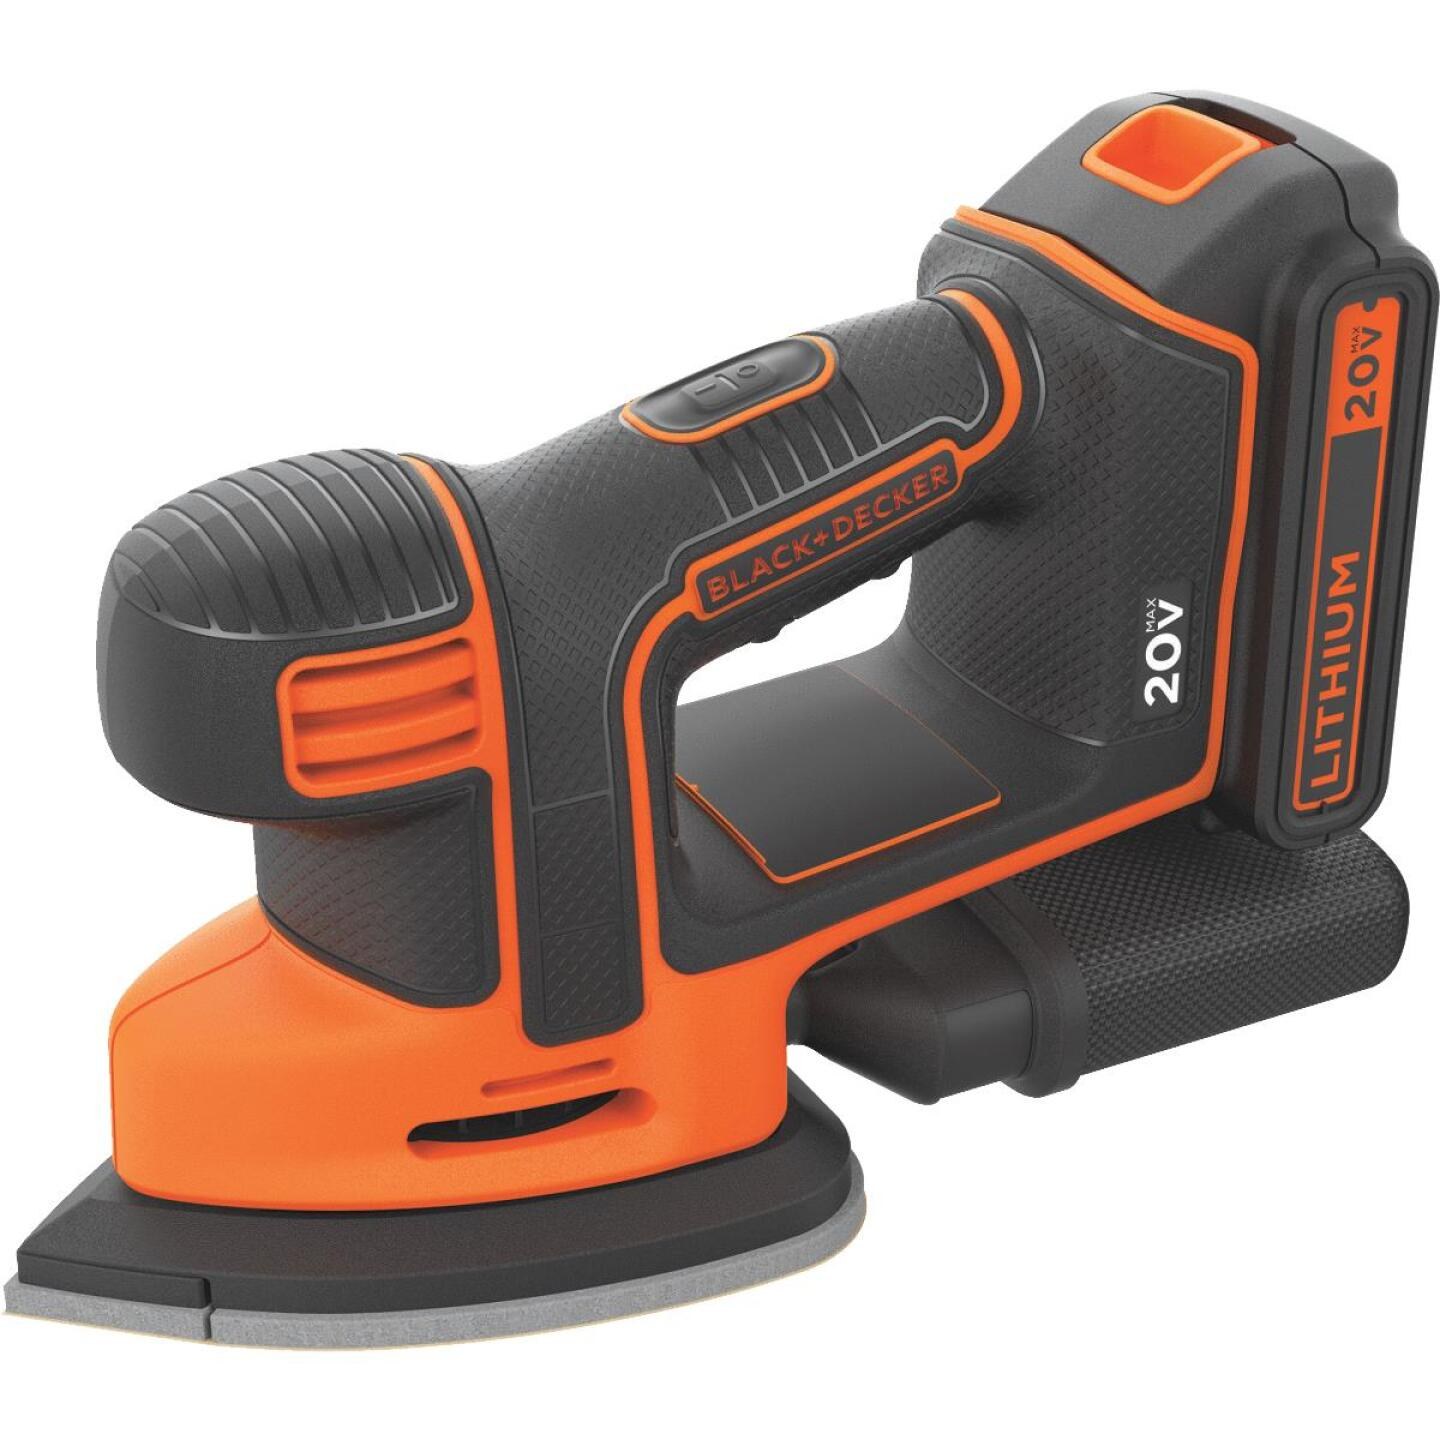 Black & Decker 20-Volt MAX Lithium-Ion Mouse Cordless Finish Sander Image 1